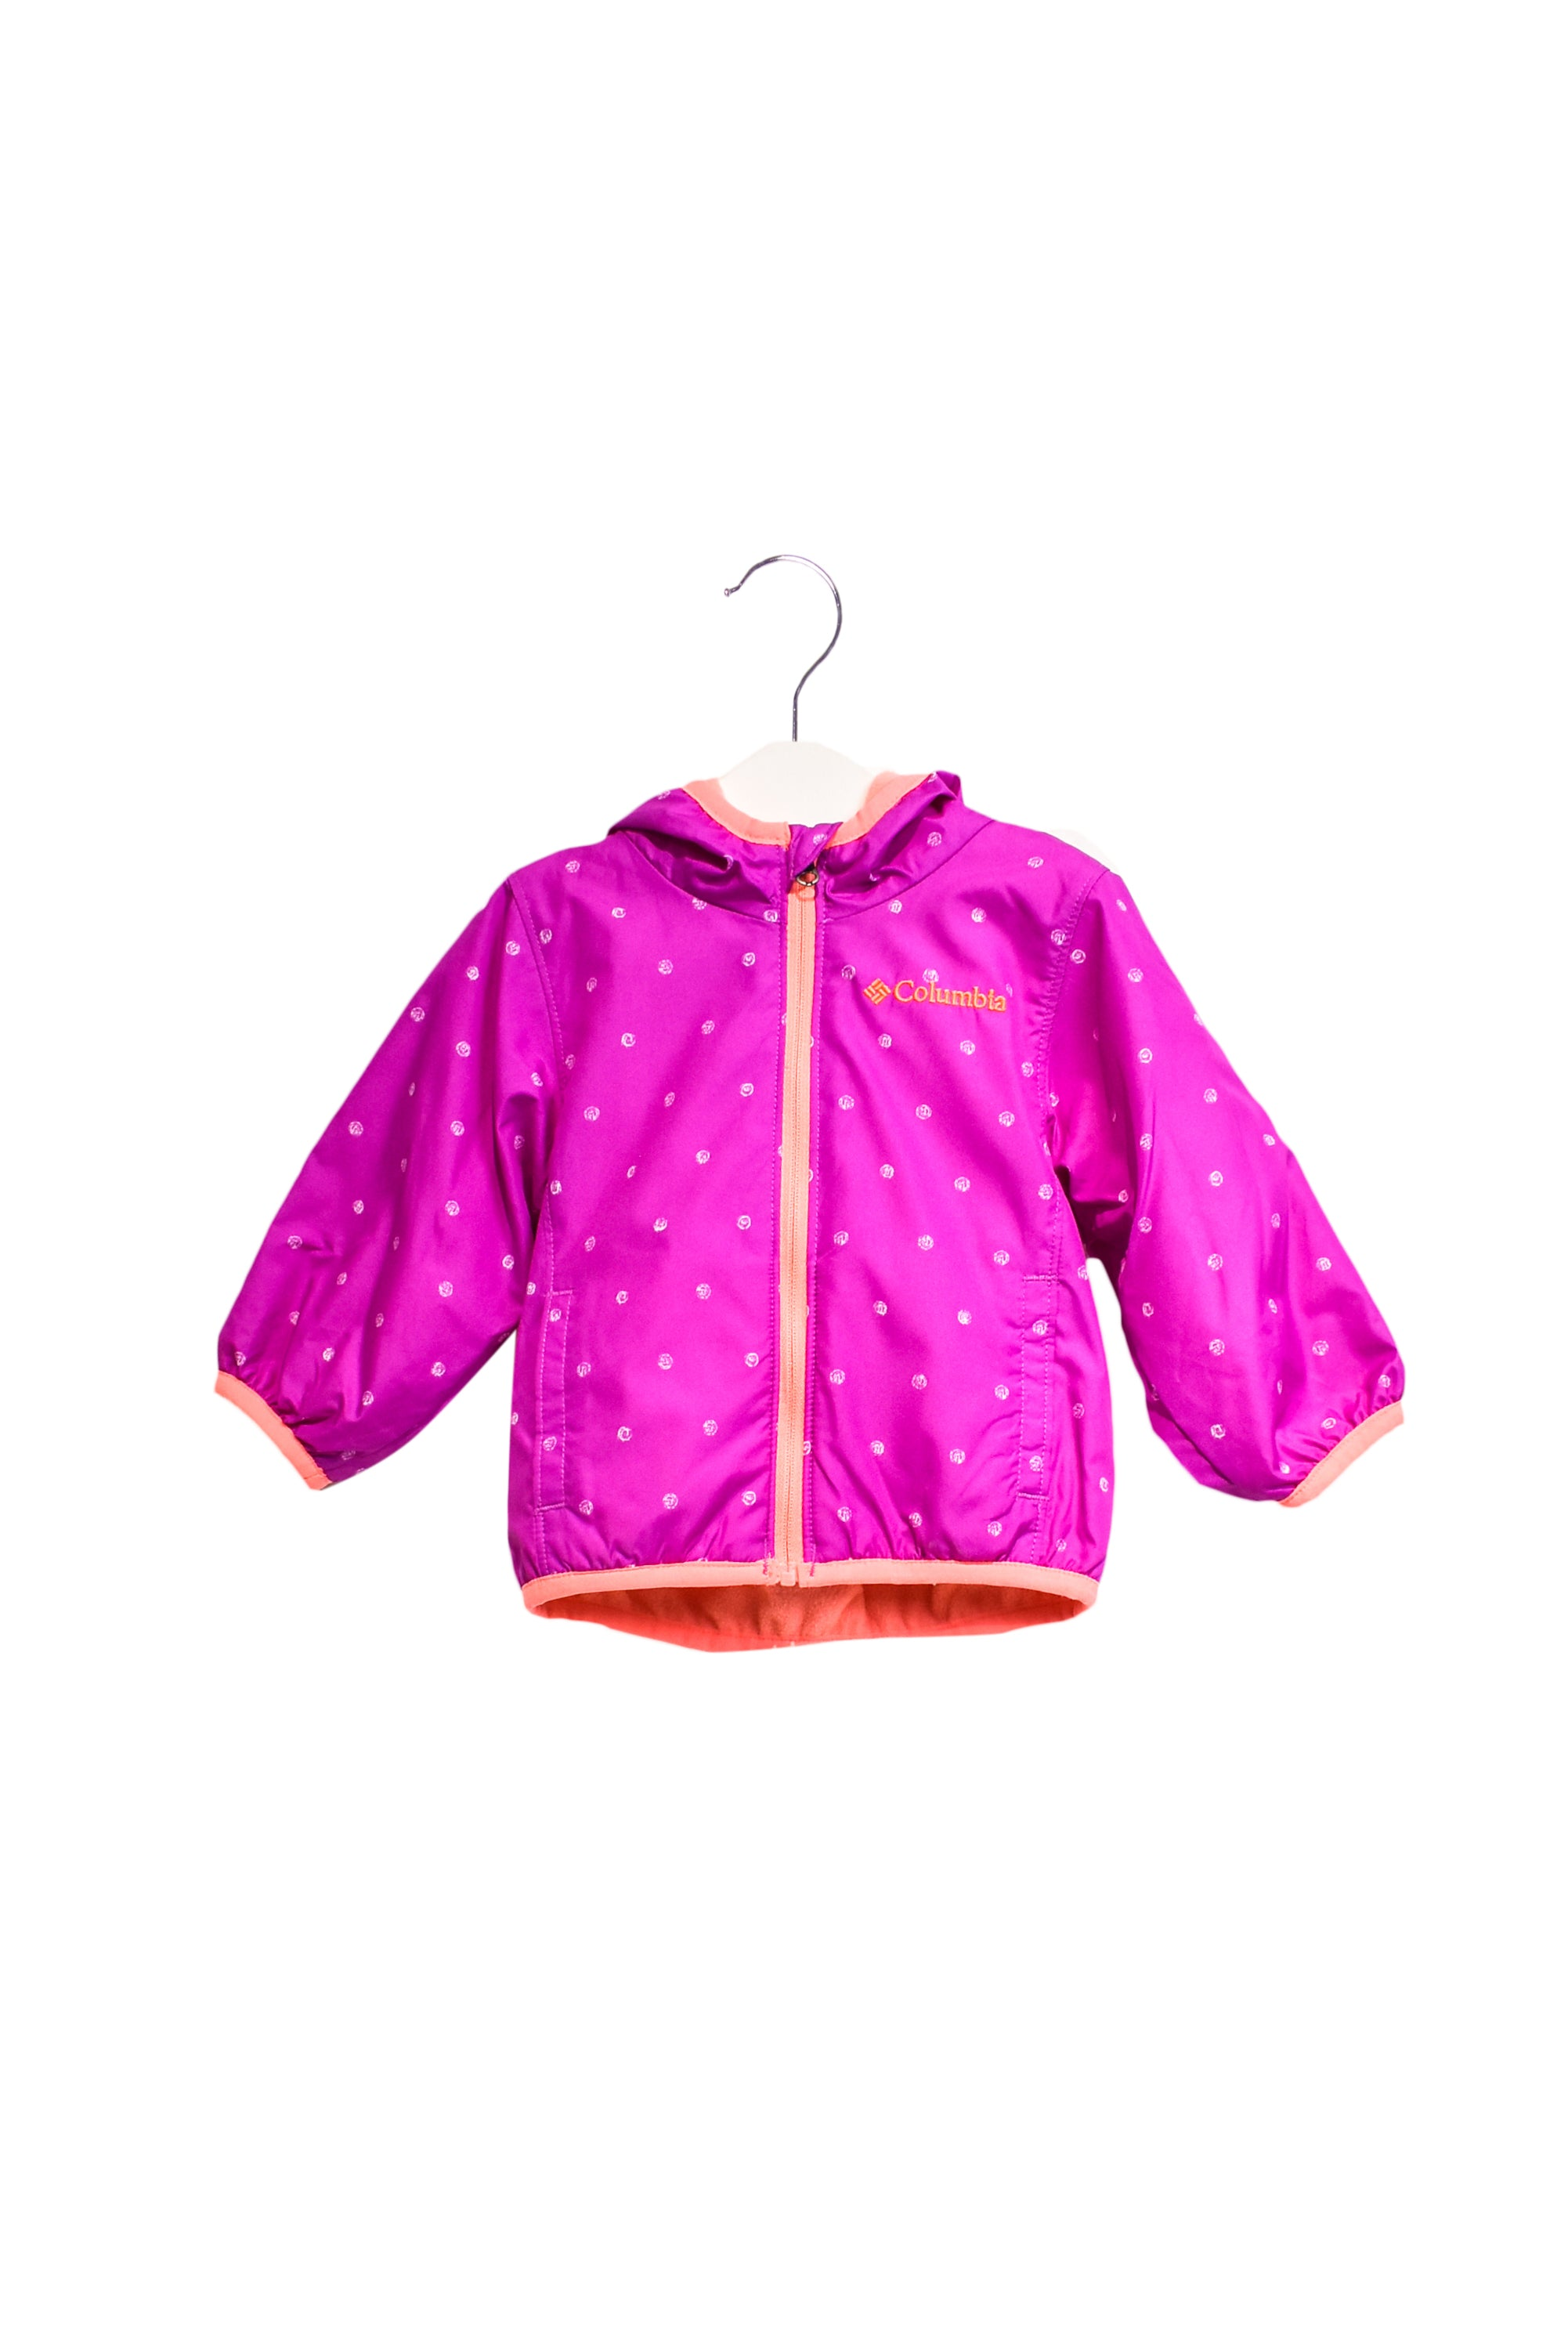 10016284 Columbia Baby~Jacket 3-6M at Retykle